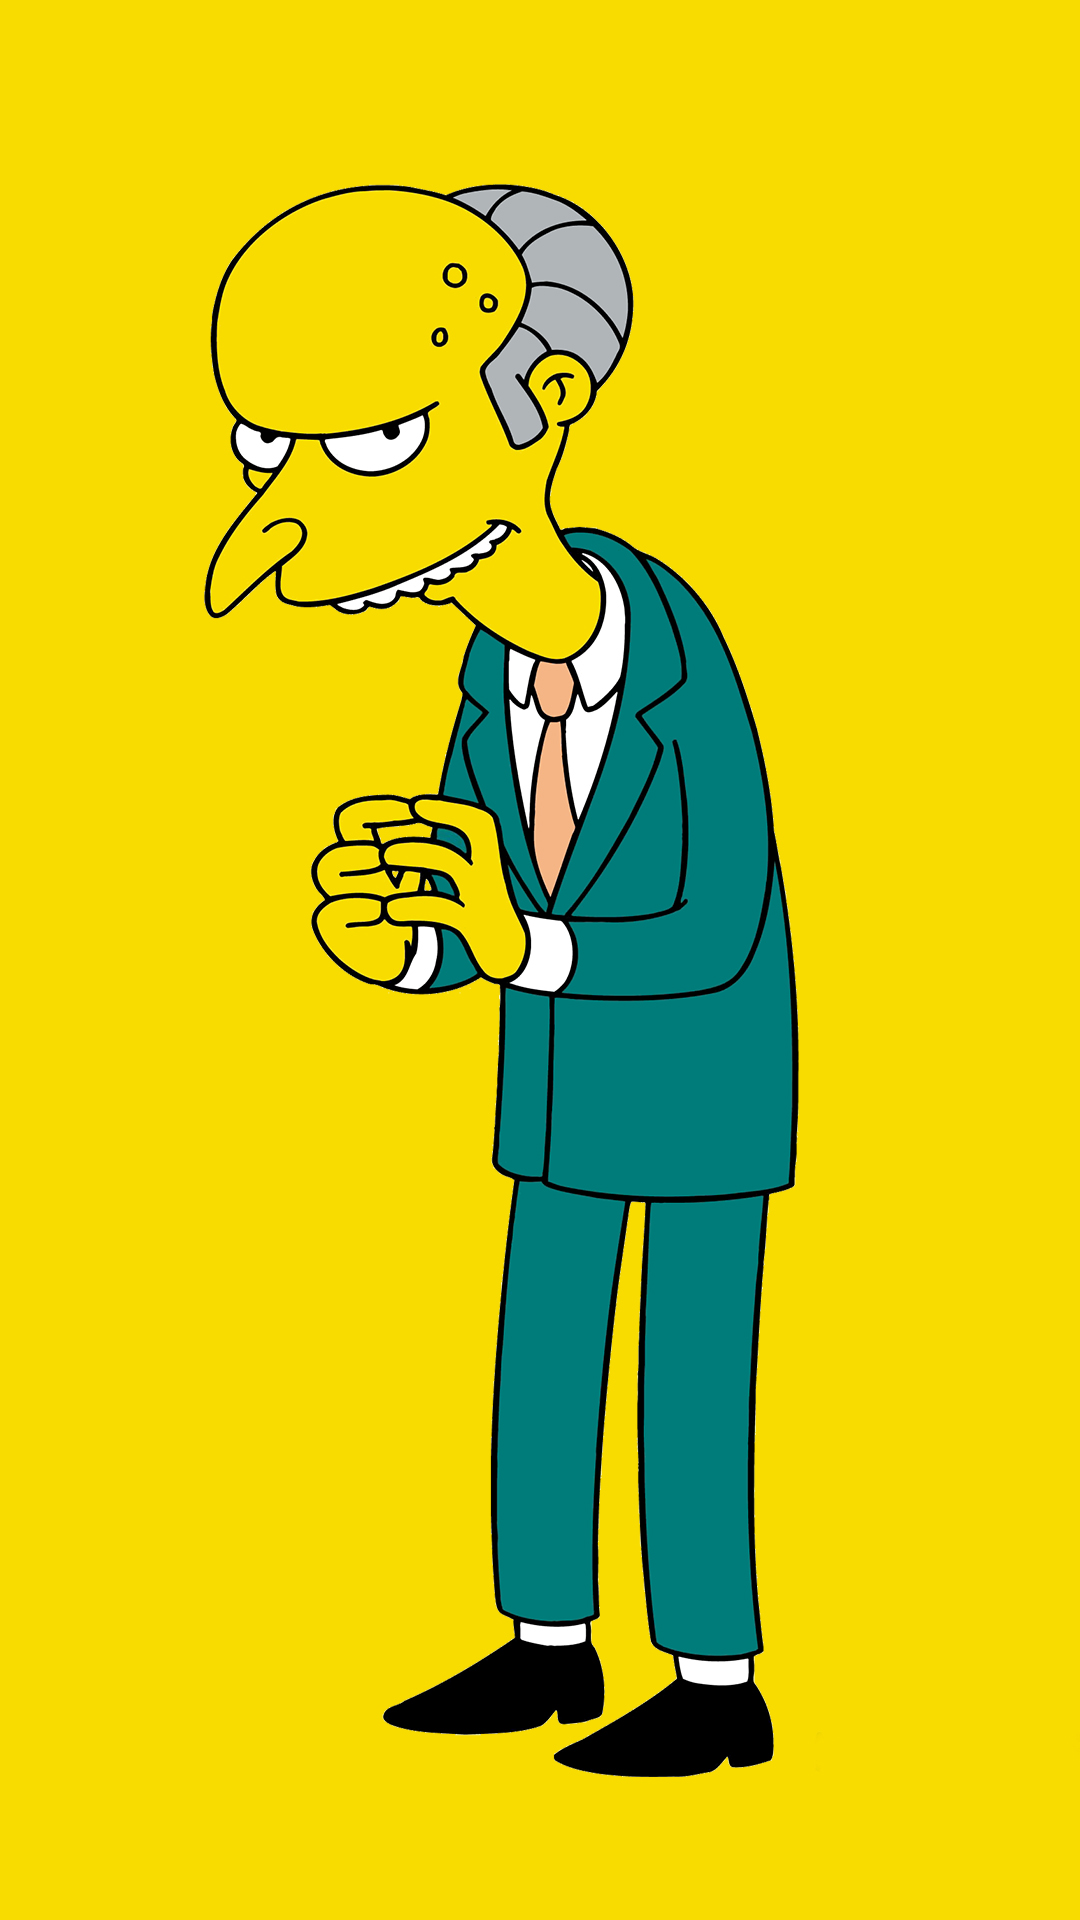 Dimensions Of Iphone X Wallpaper Mr Burns Hd Wallpaper For Your Mobile Phone